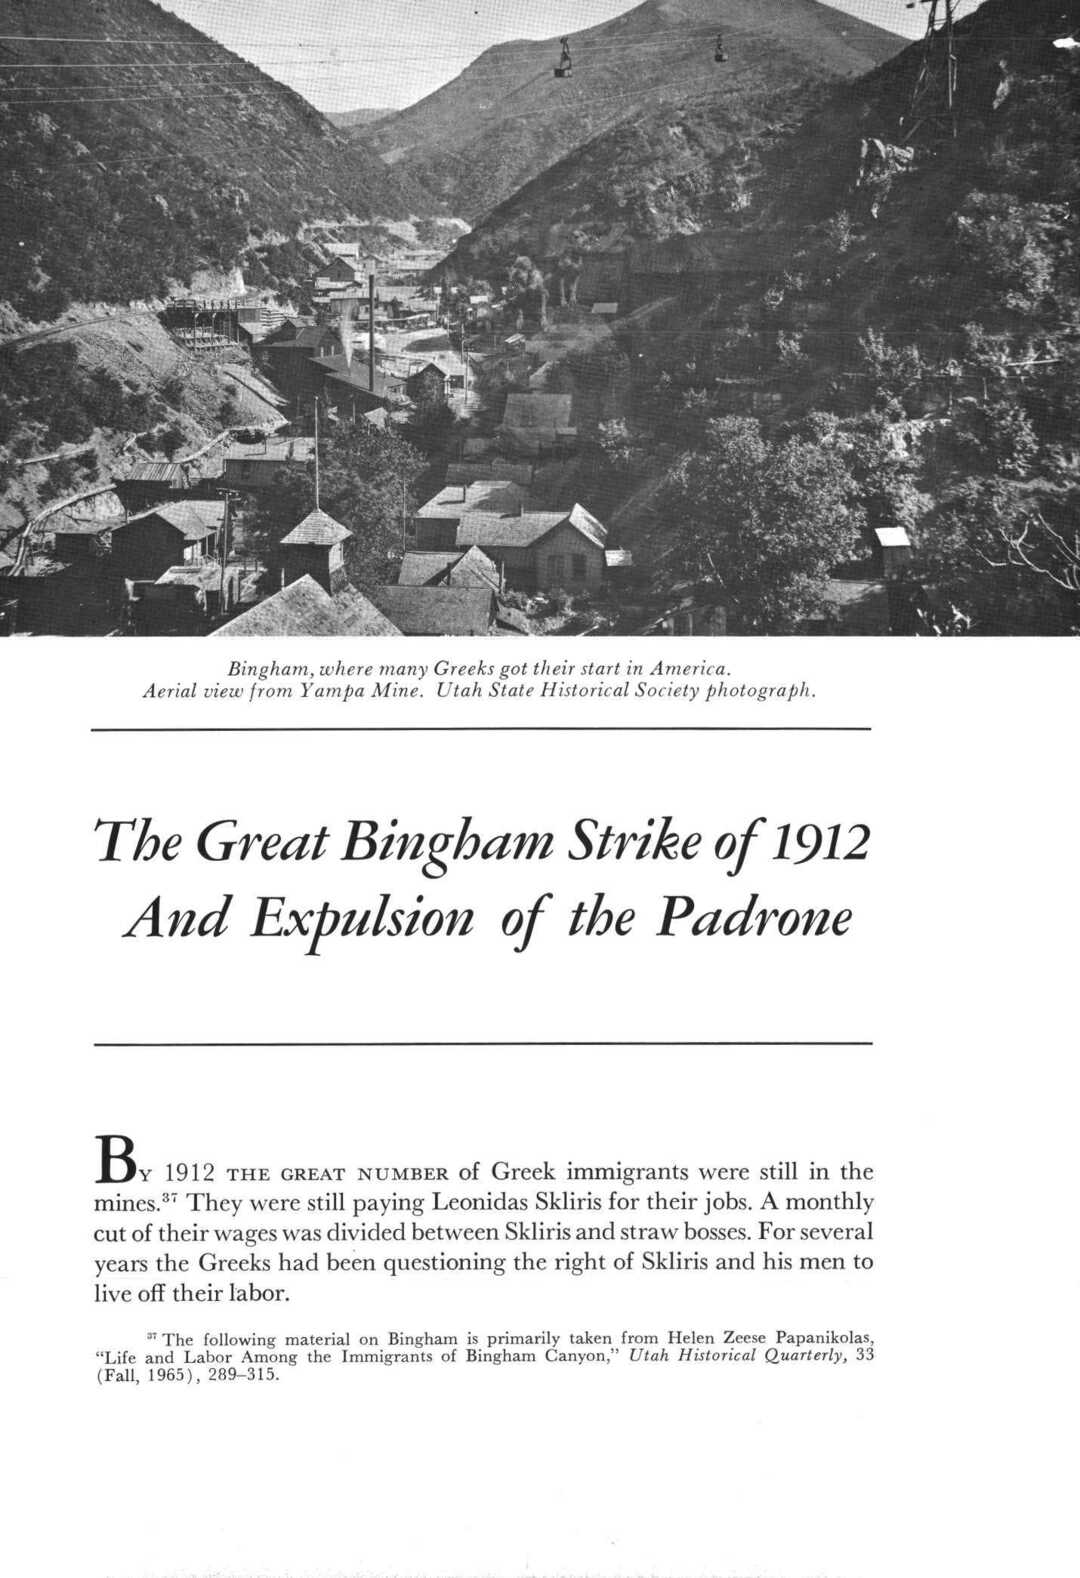 Page 26 of The Great Bingham Strike of 1912 And Expulsion of the Padrone